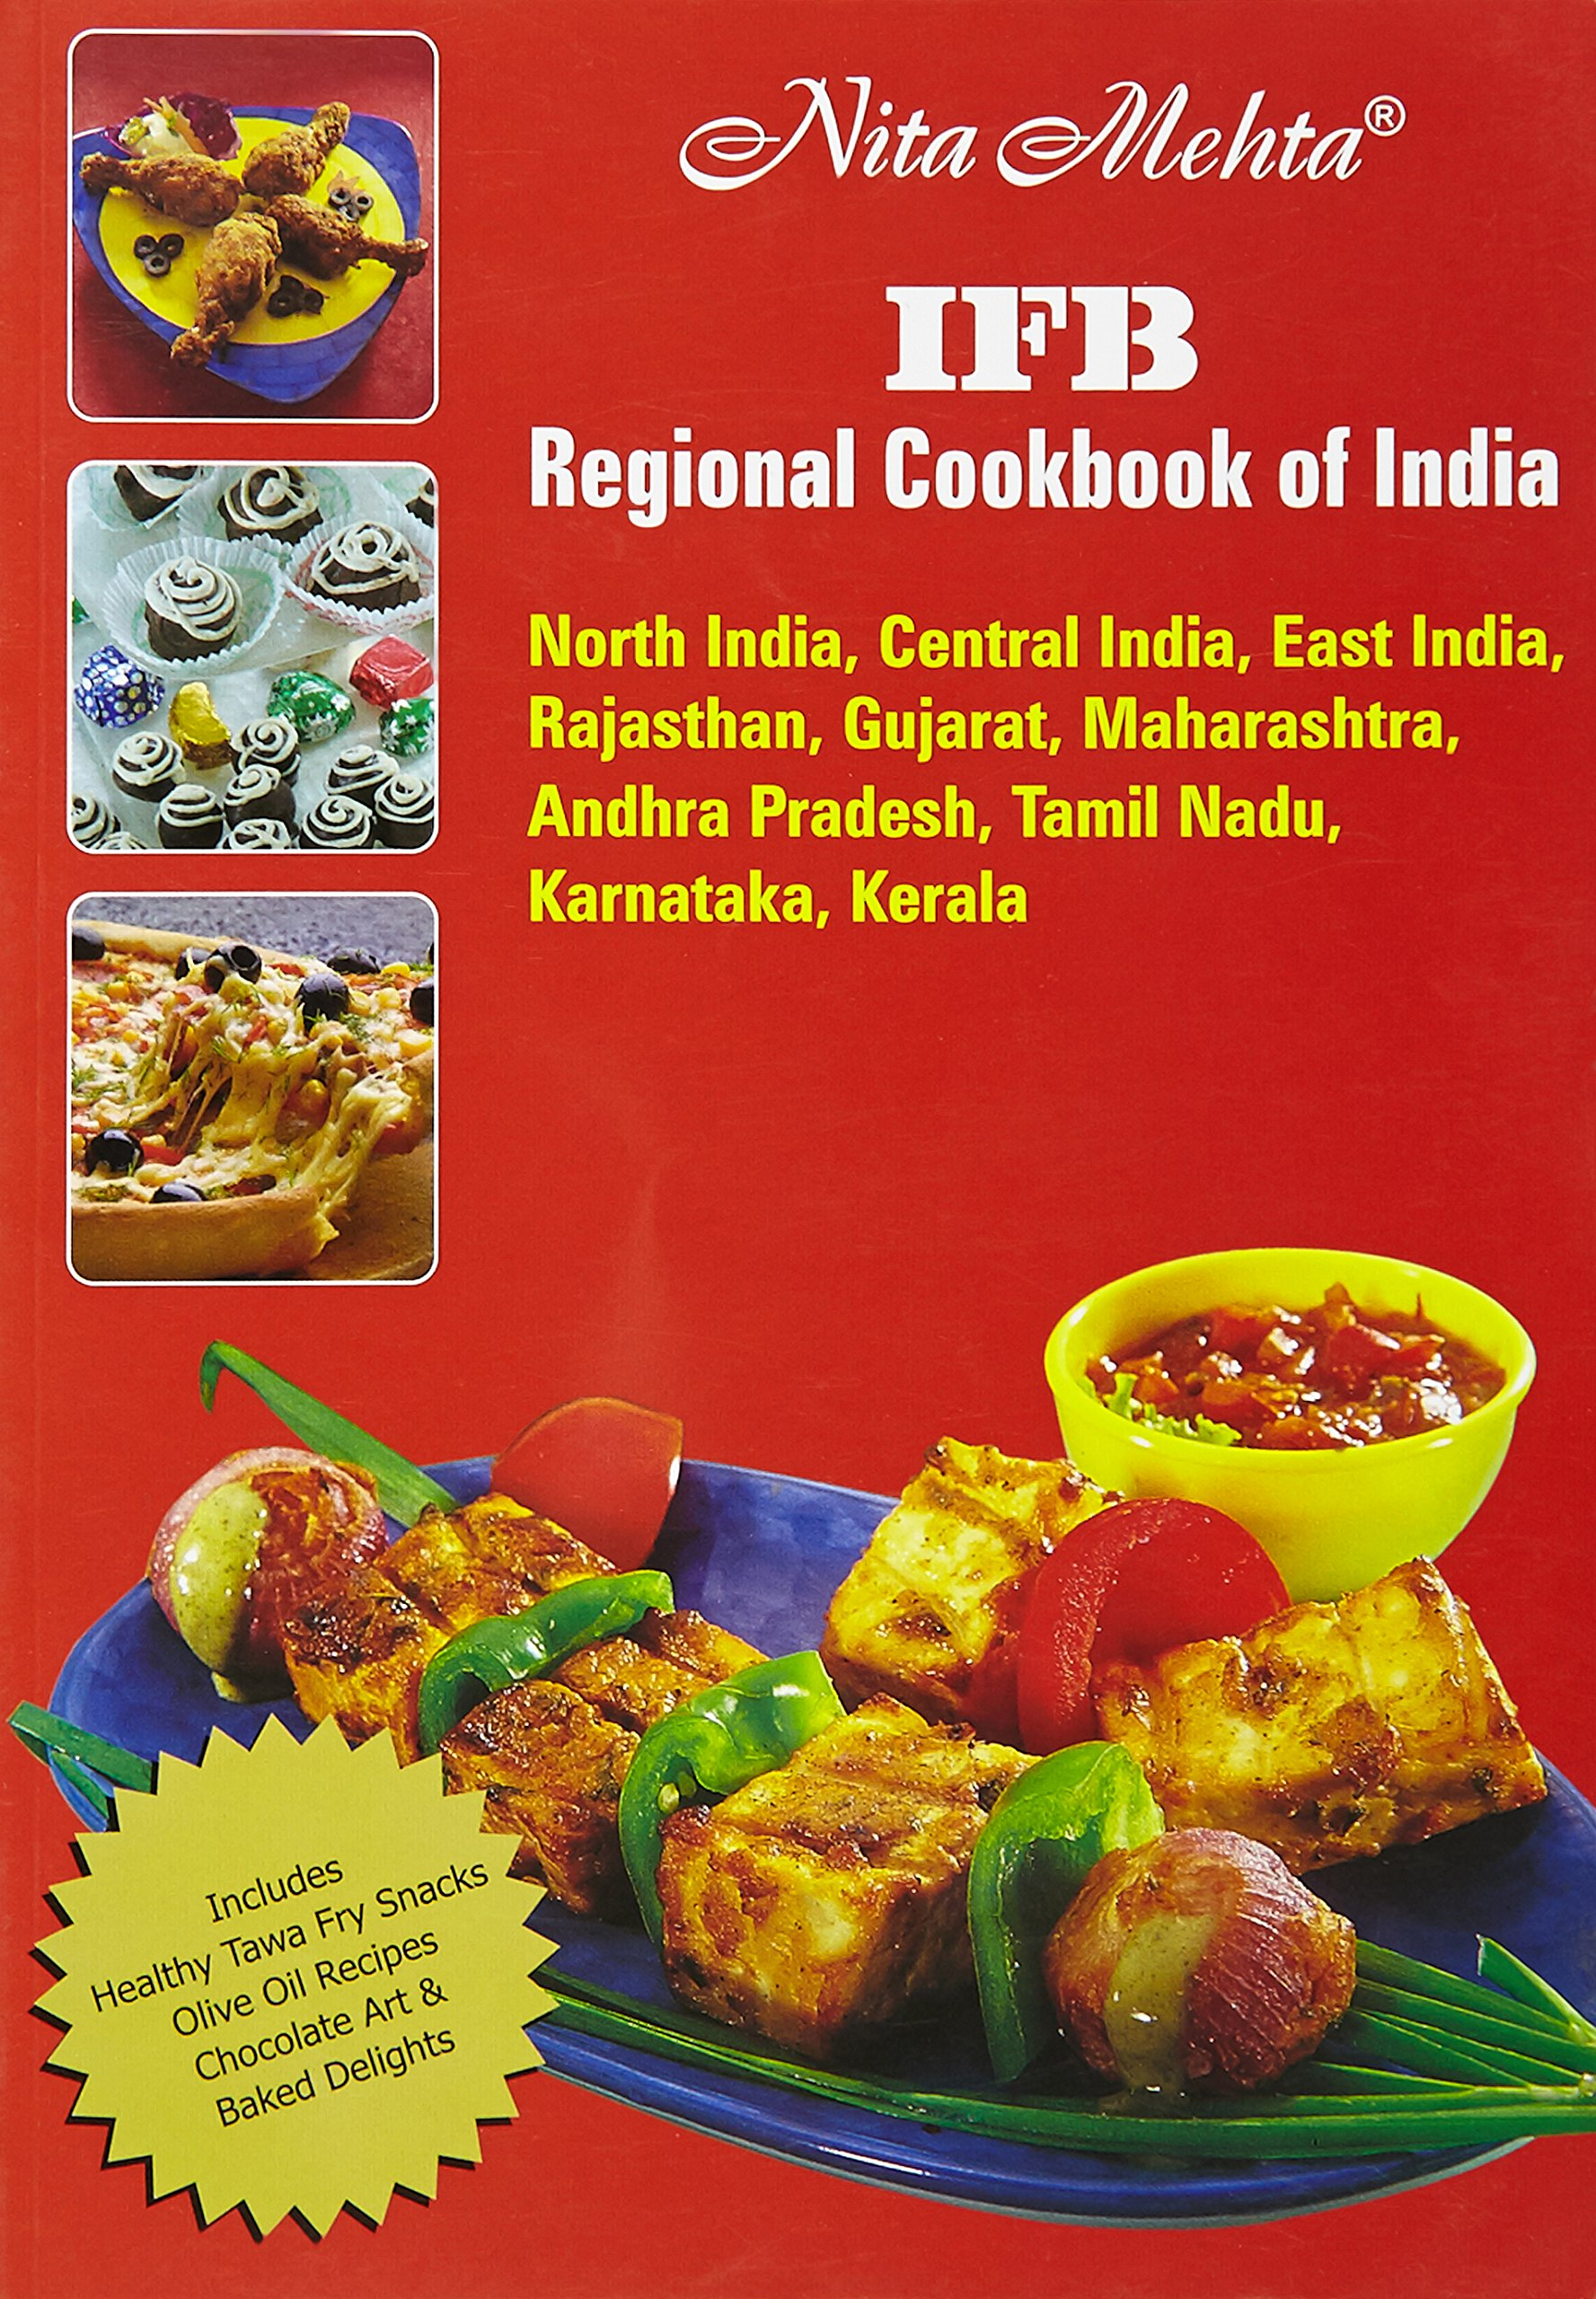 Buy ifb regional cookbook of india book online at low prices in buy ifb regional cookbook of india book online at low prices in india ifb regional cookbook of india reviews ratings amazon forumfinder Image collections